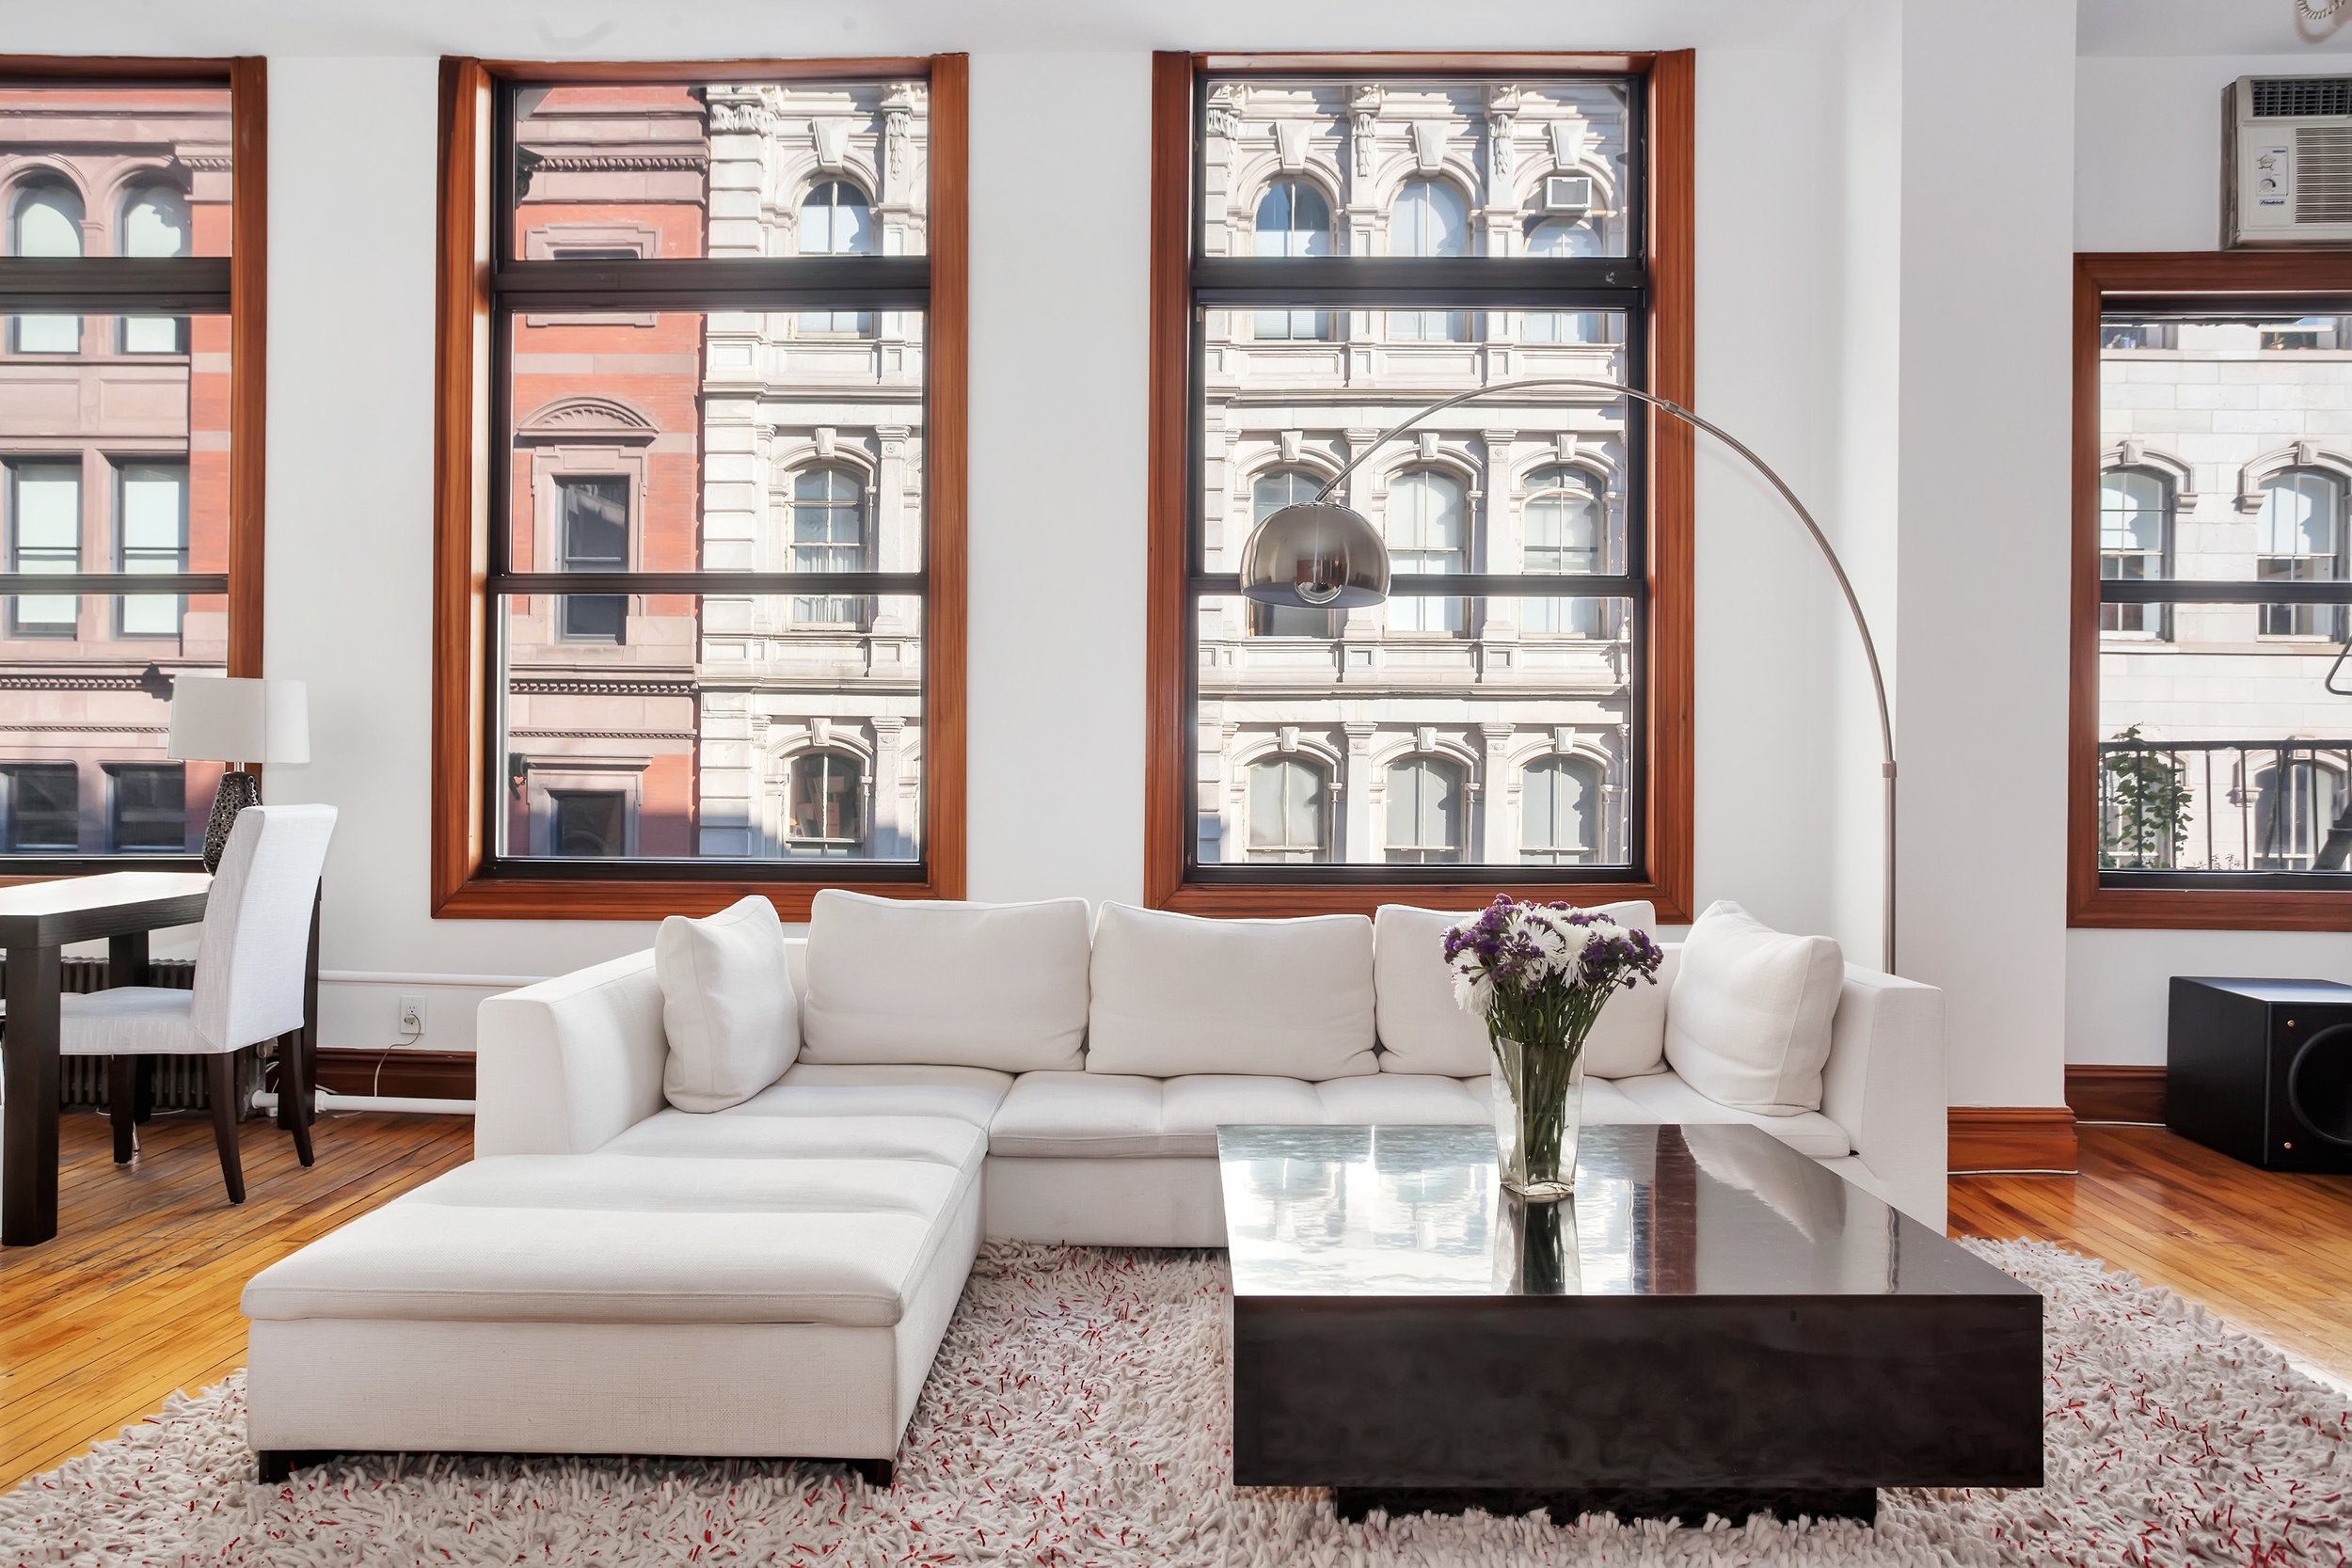 18 East 18th Street, 4th Floor - $3,000,000